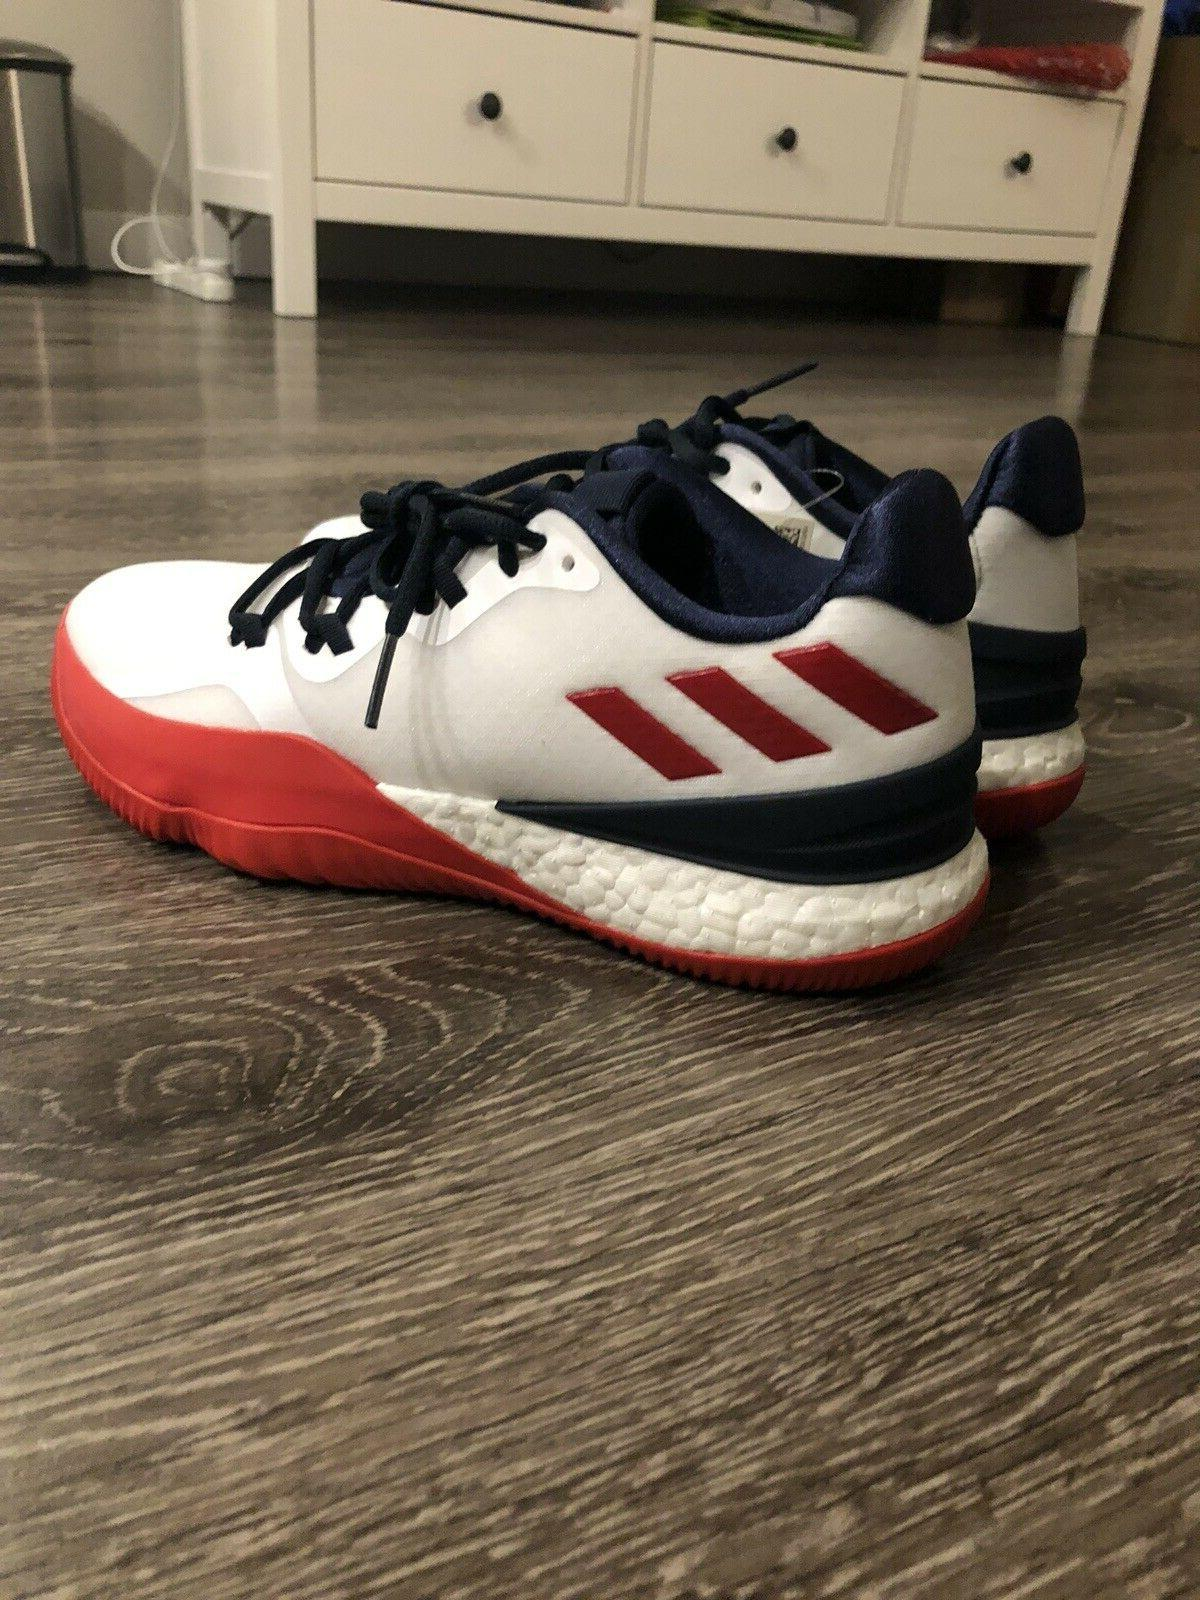 Adidas Boost Men's White Boost Basketball Shoe 8.5